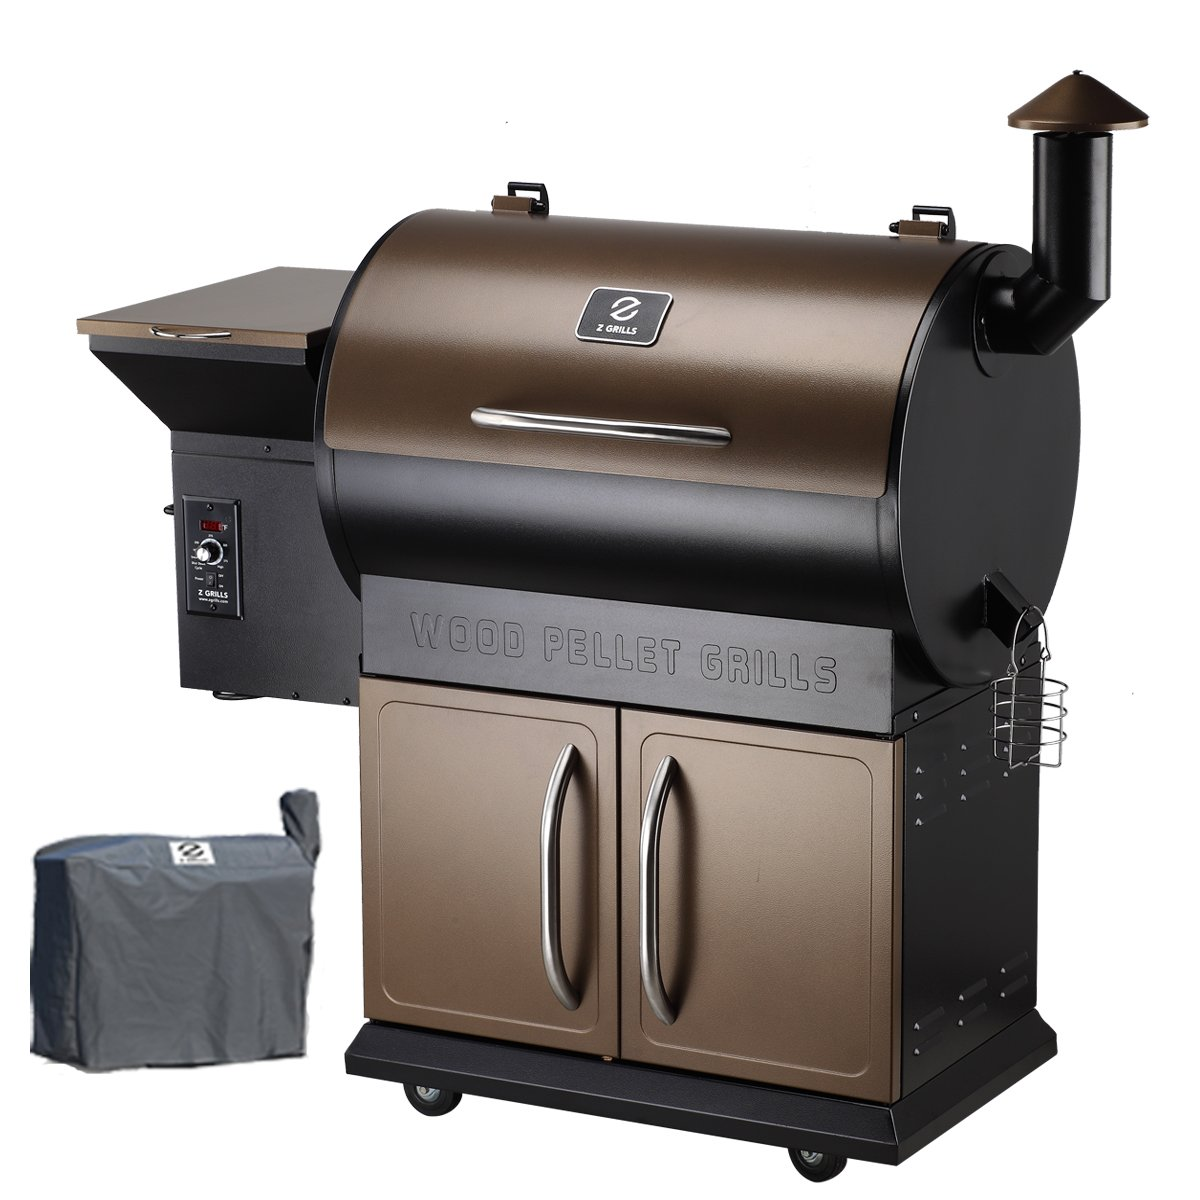 Z Grills Wood Pellet Grill & Smoker with Patio Cover,700 Cooking Area 7 in 1